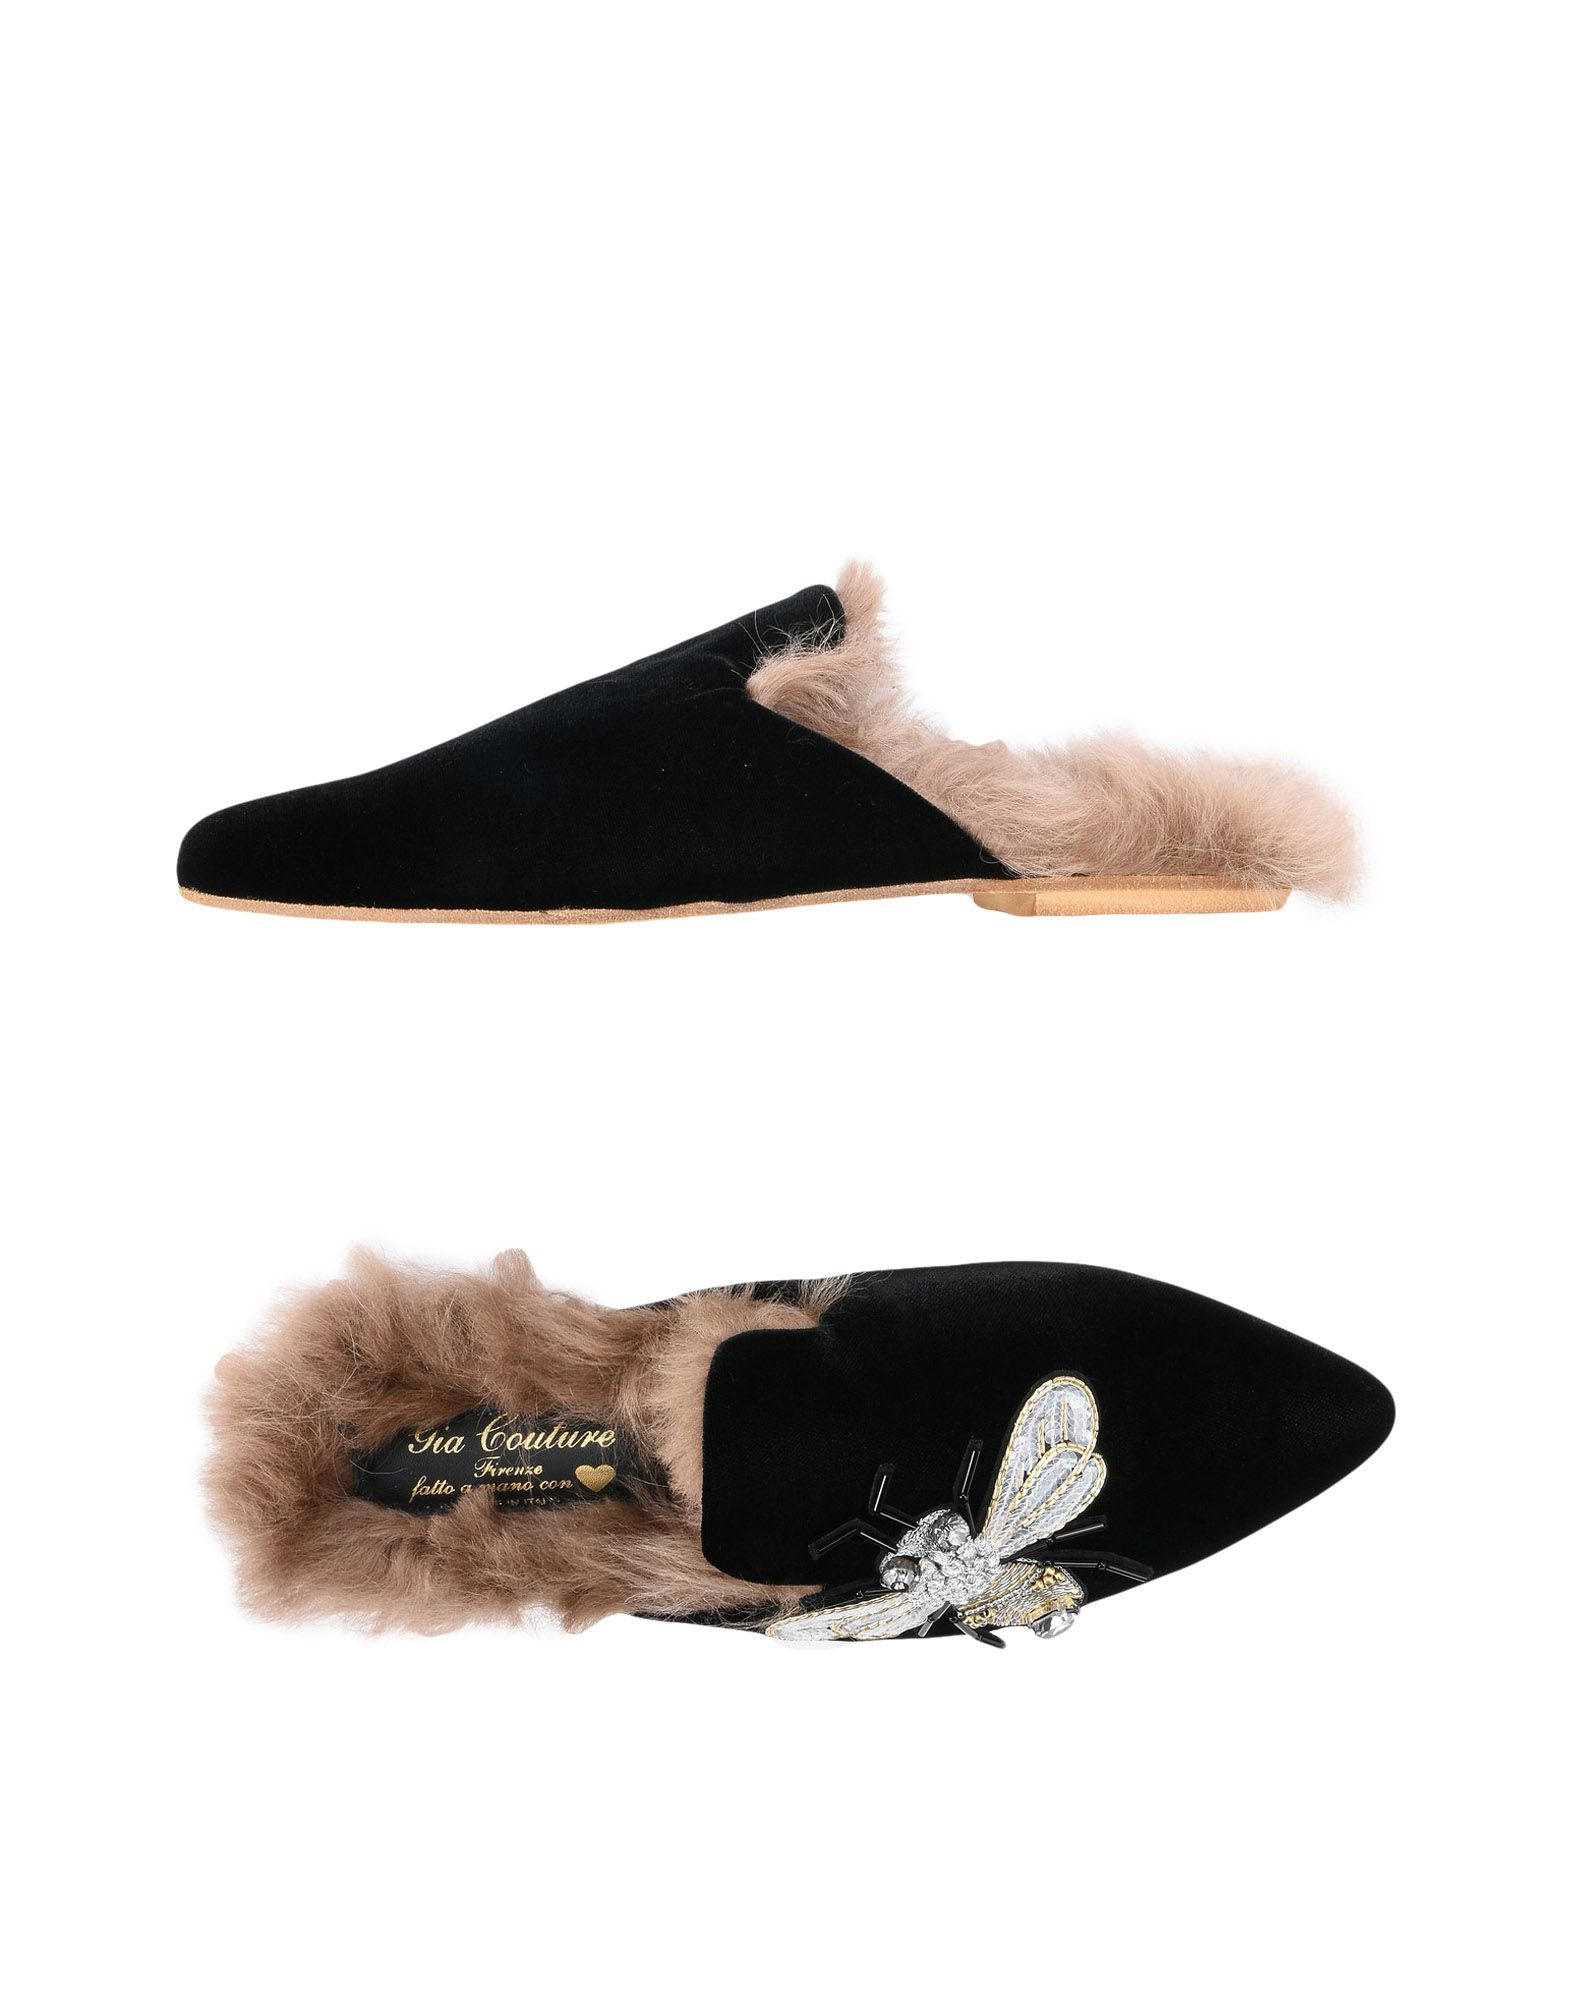 Gia on Couture Mules - Women Gia Couture Mules online on Gia  Australia - 11495957DV 2ade7e